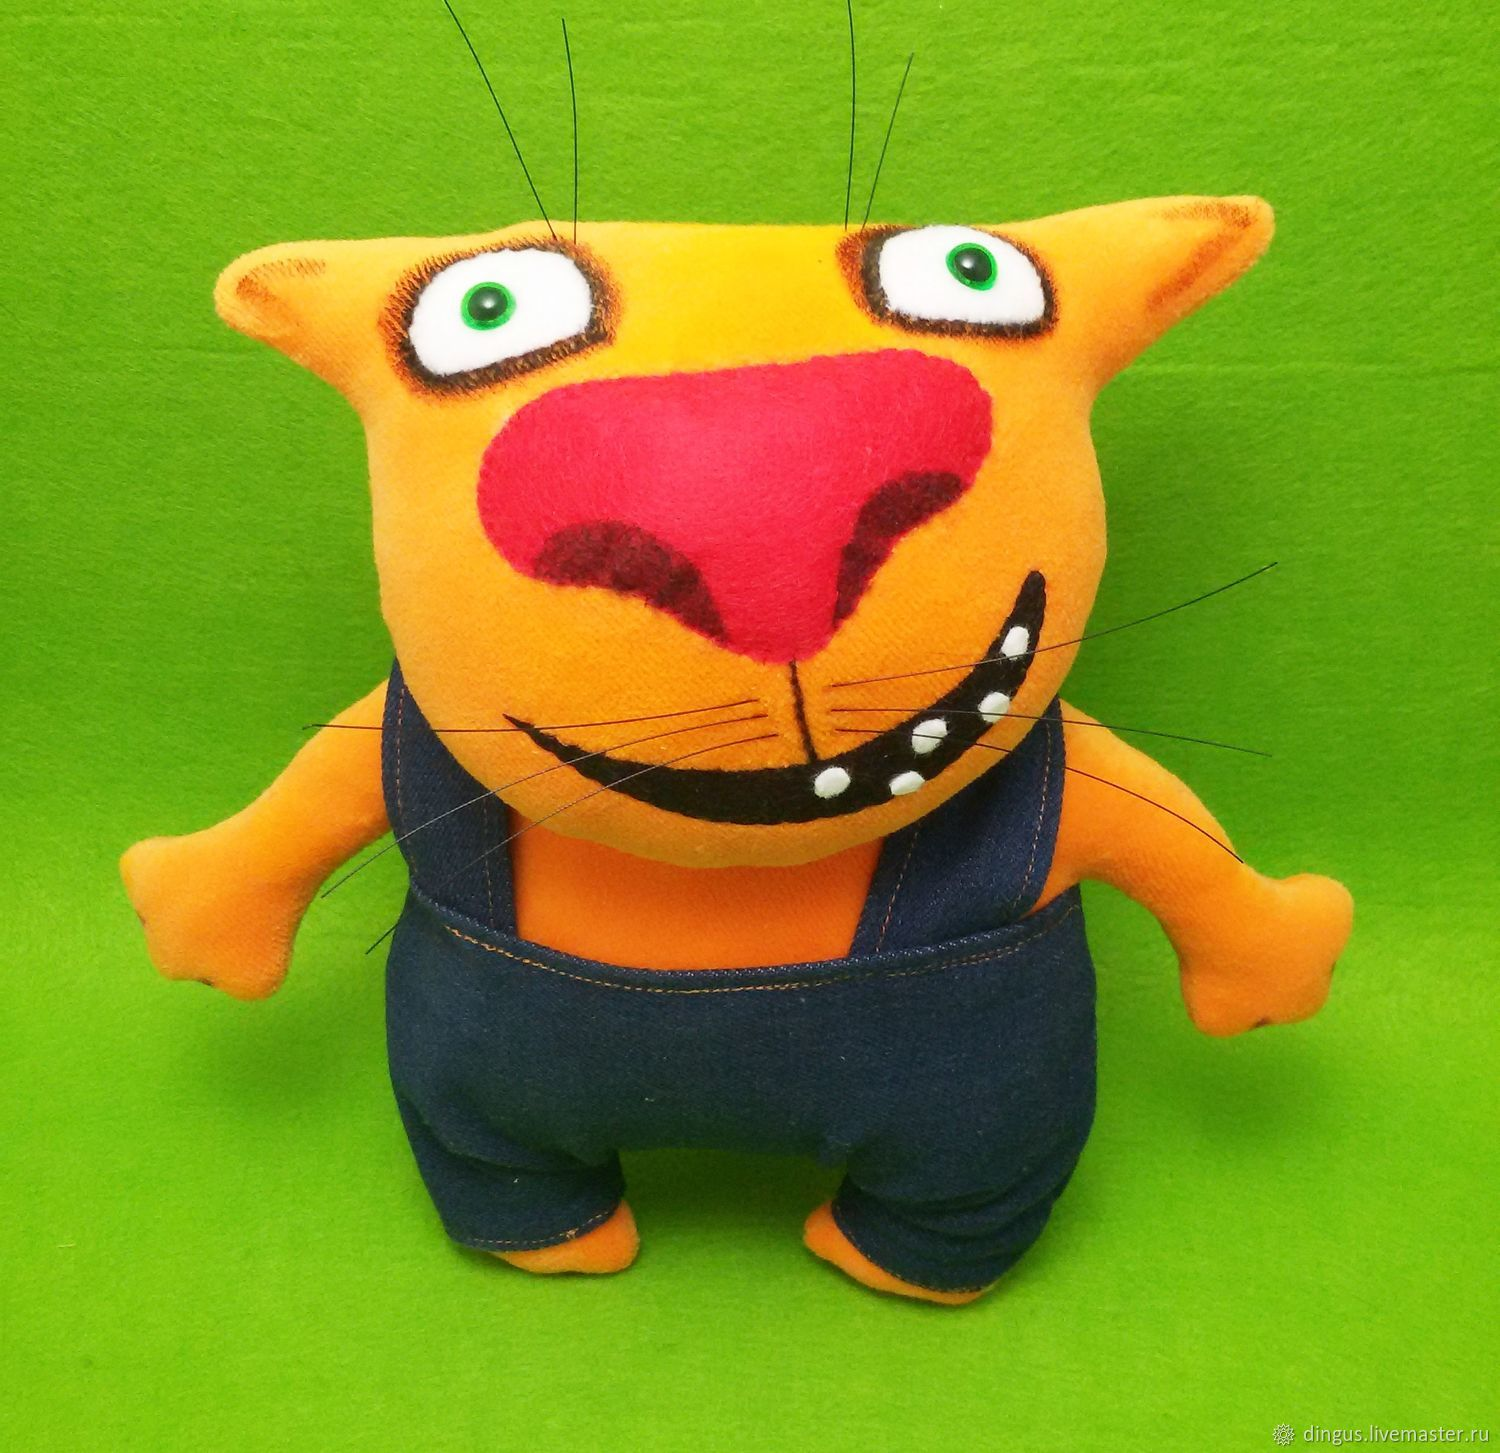 Toy Fat Cat In Overalls Shop Online On Livemaster With Shipping